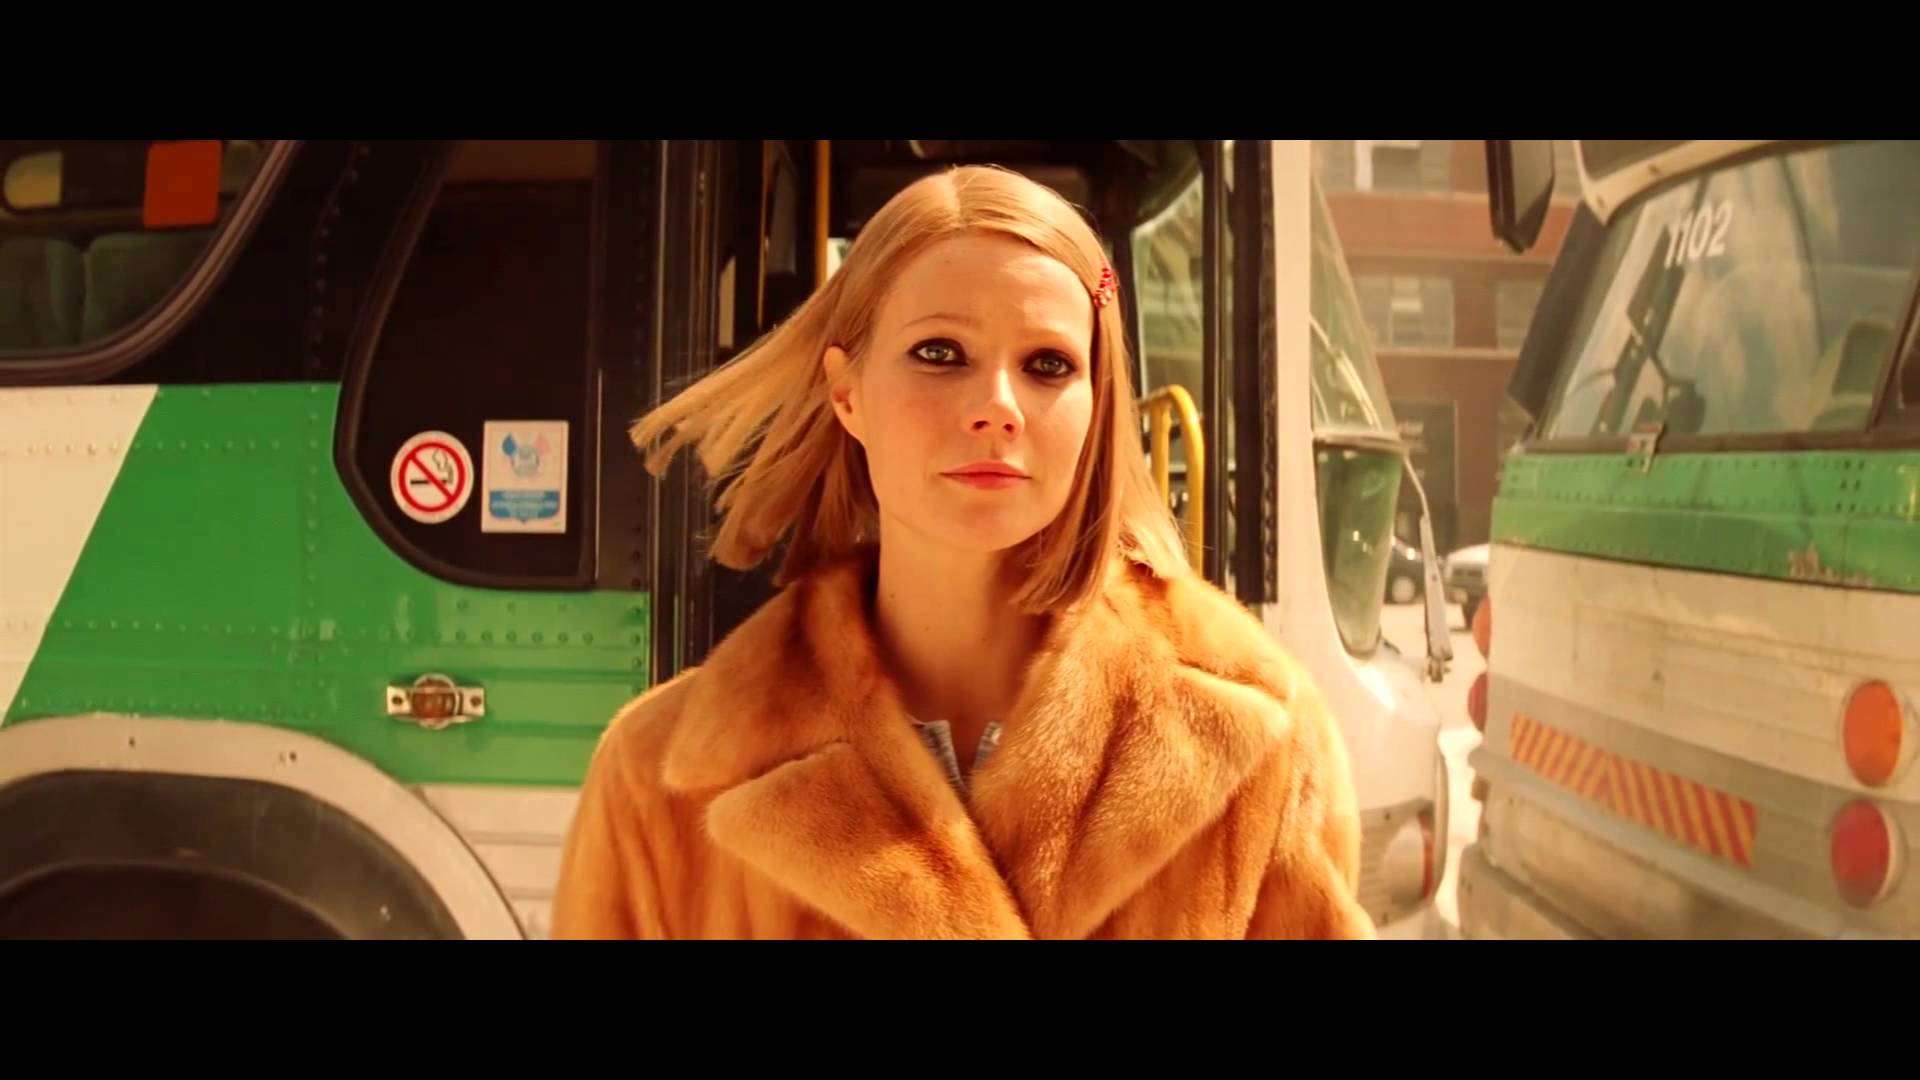 WES, A Compilation Video of Director Wes Anderson's Slow Motion Shots in Films